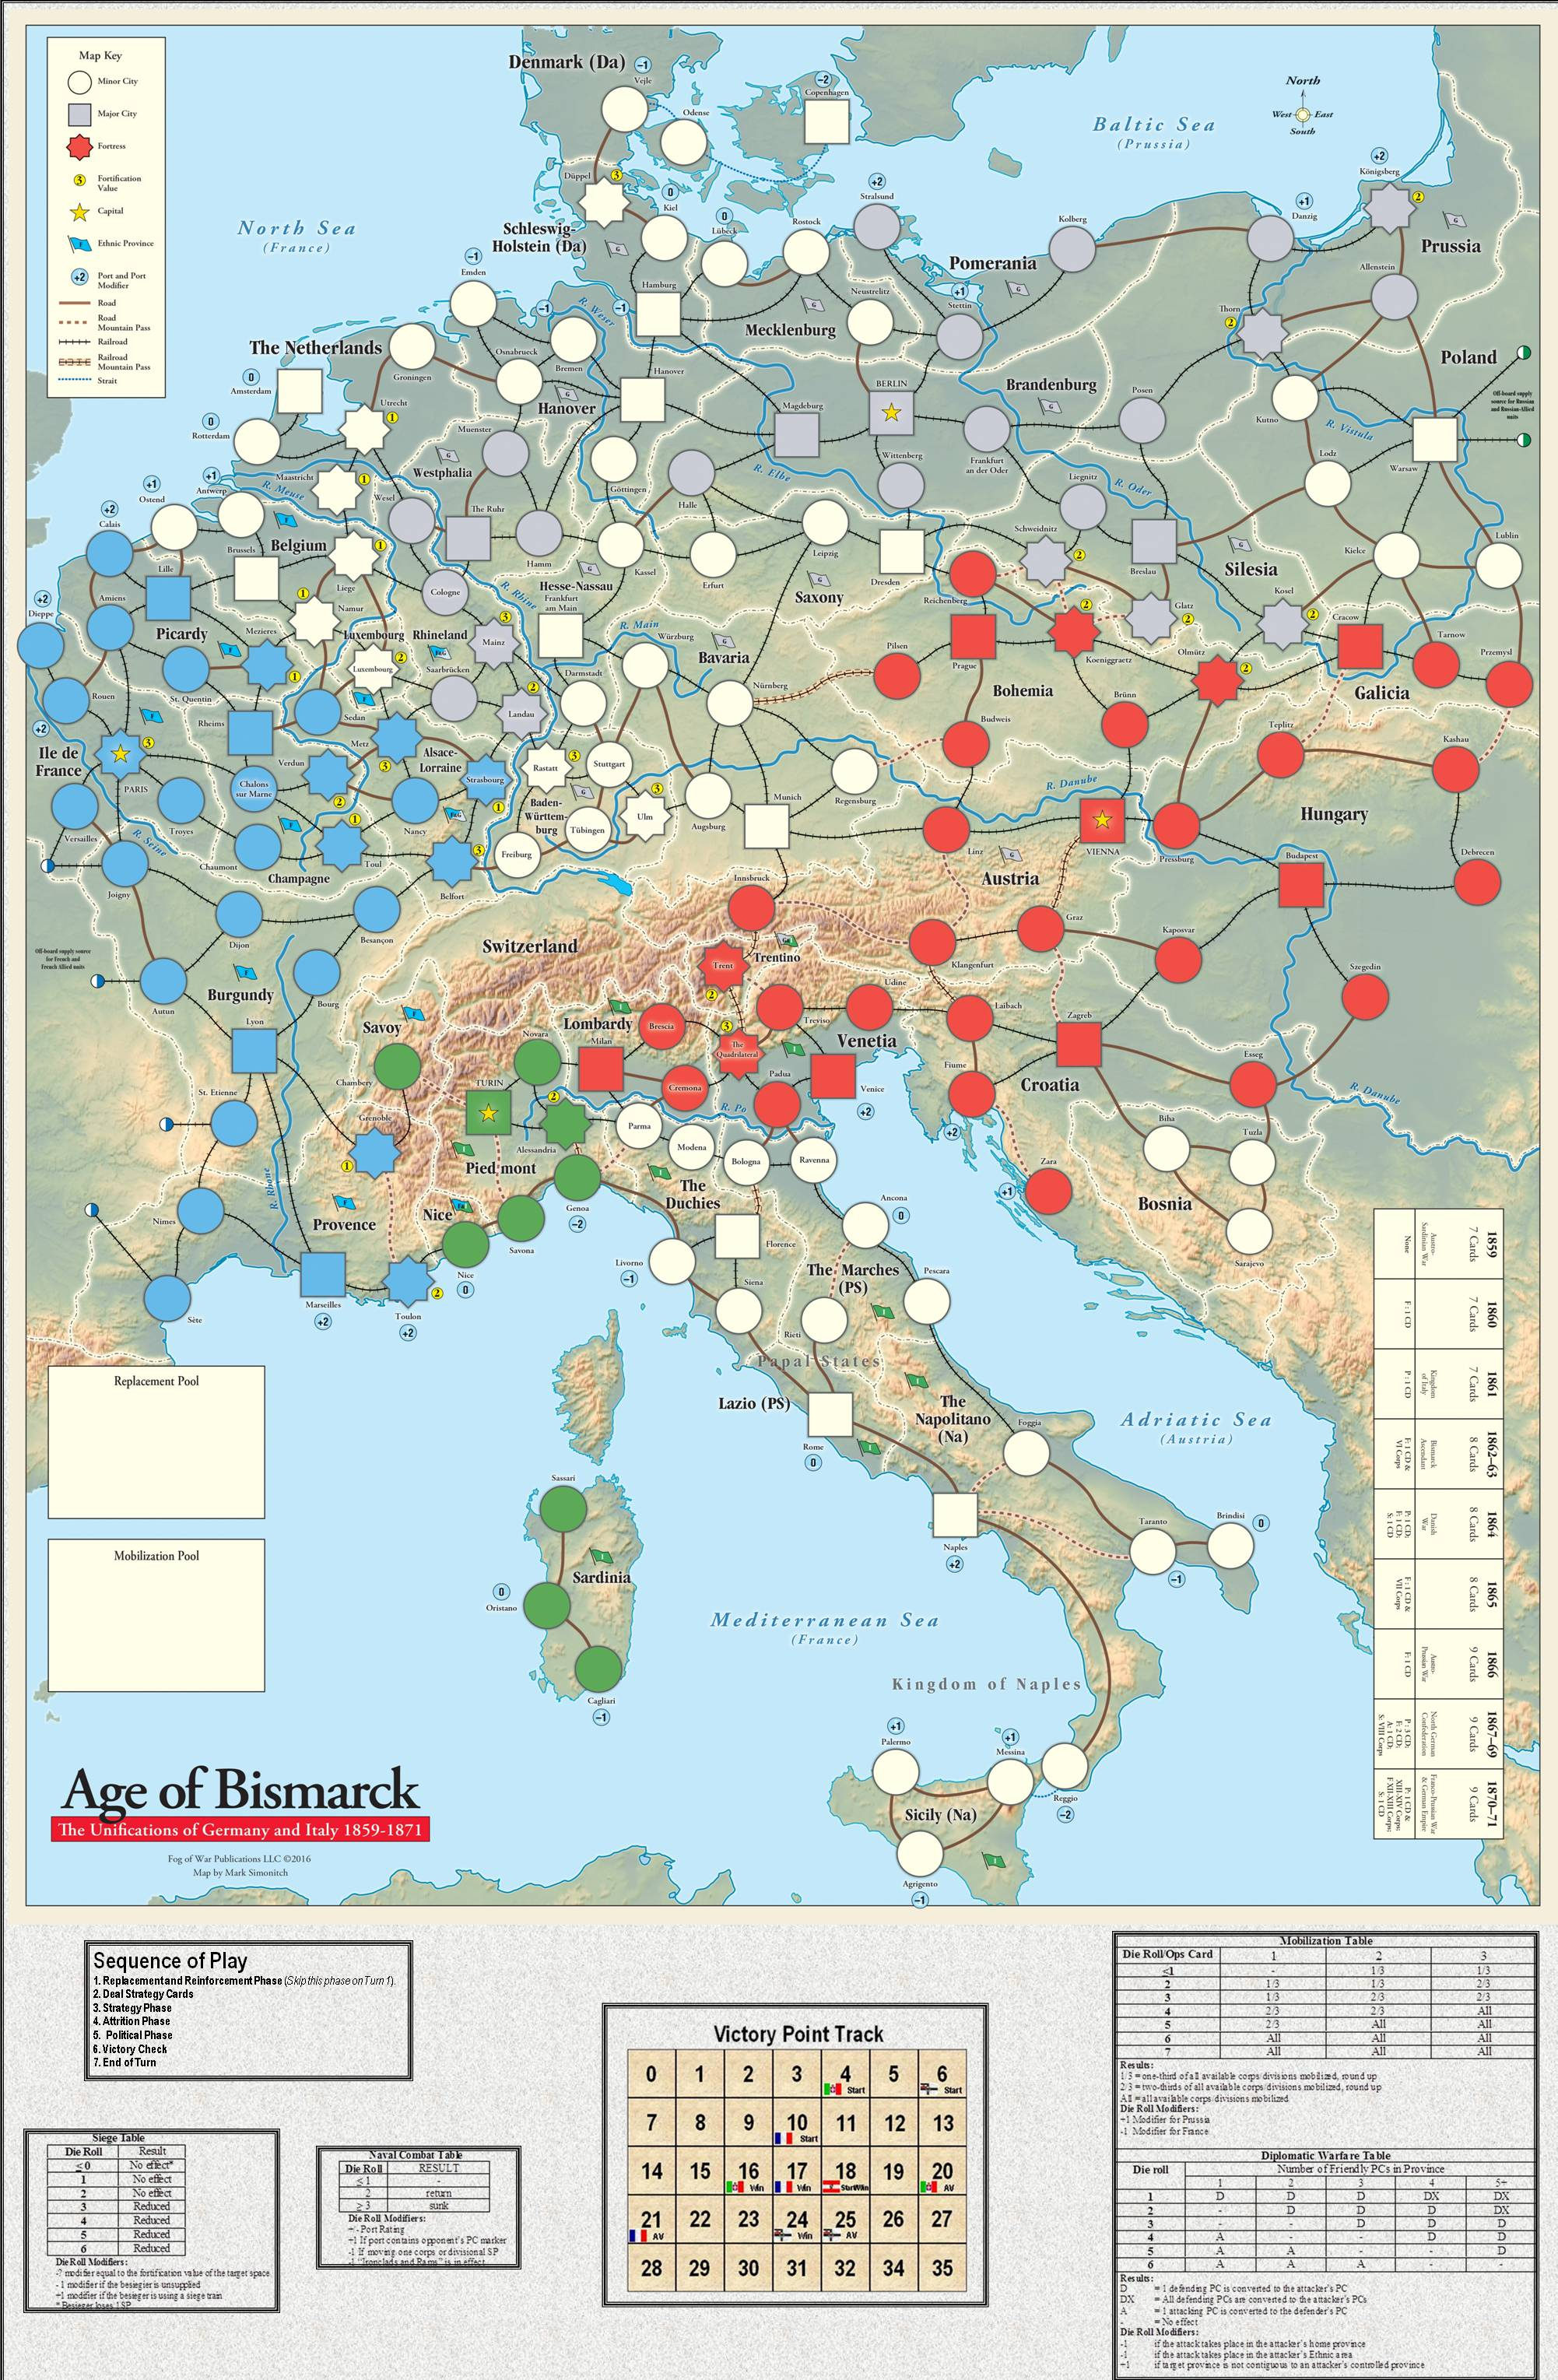 comparison unifications italy and germany Genocide comparison  both italy and germany sought to unify their  predict what impact the unification of italy and unification of germany will have .